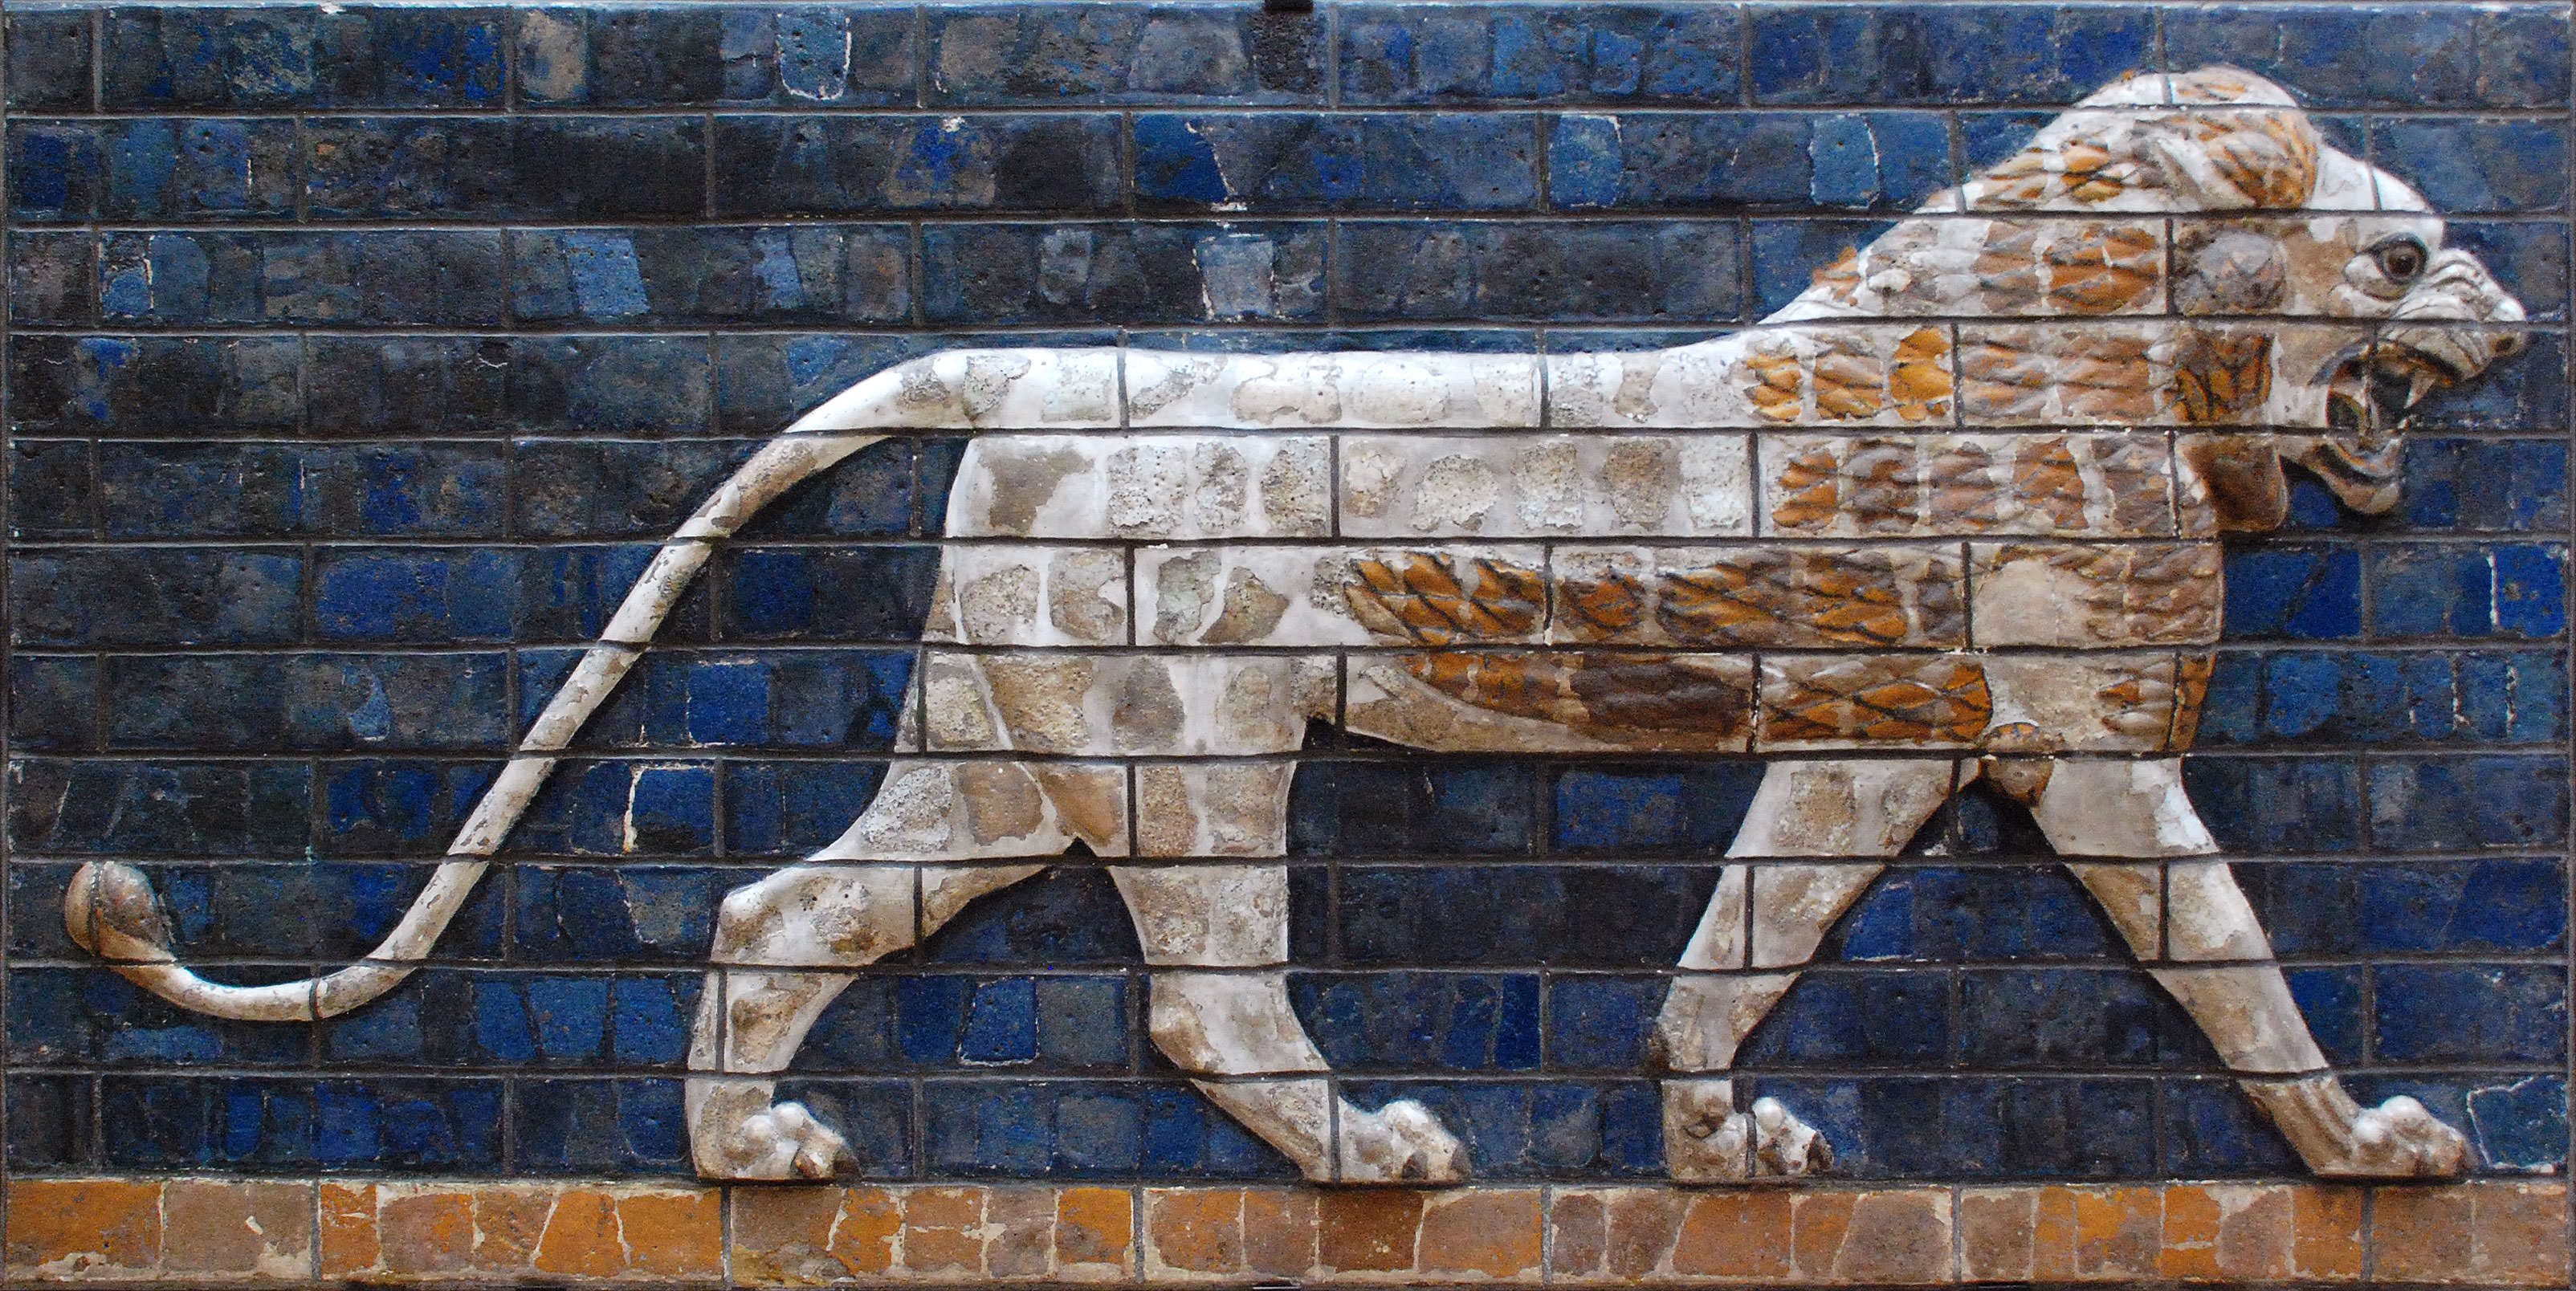 Lion of Babylon (Illustration) - Ancient History Encyclopedia